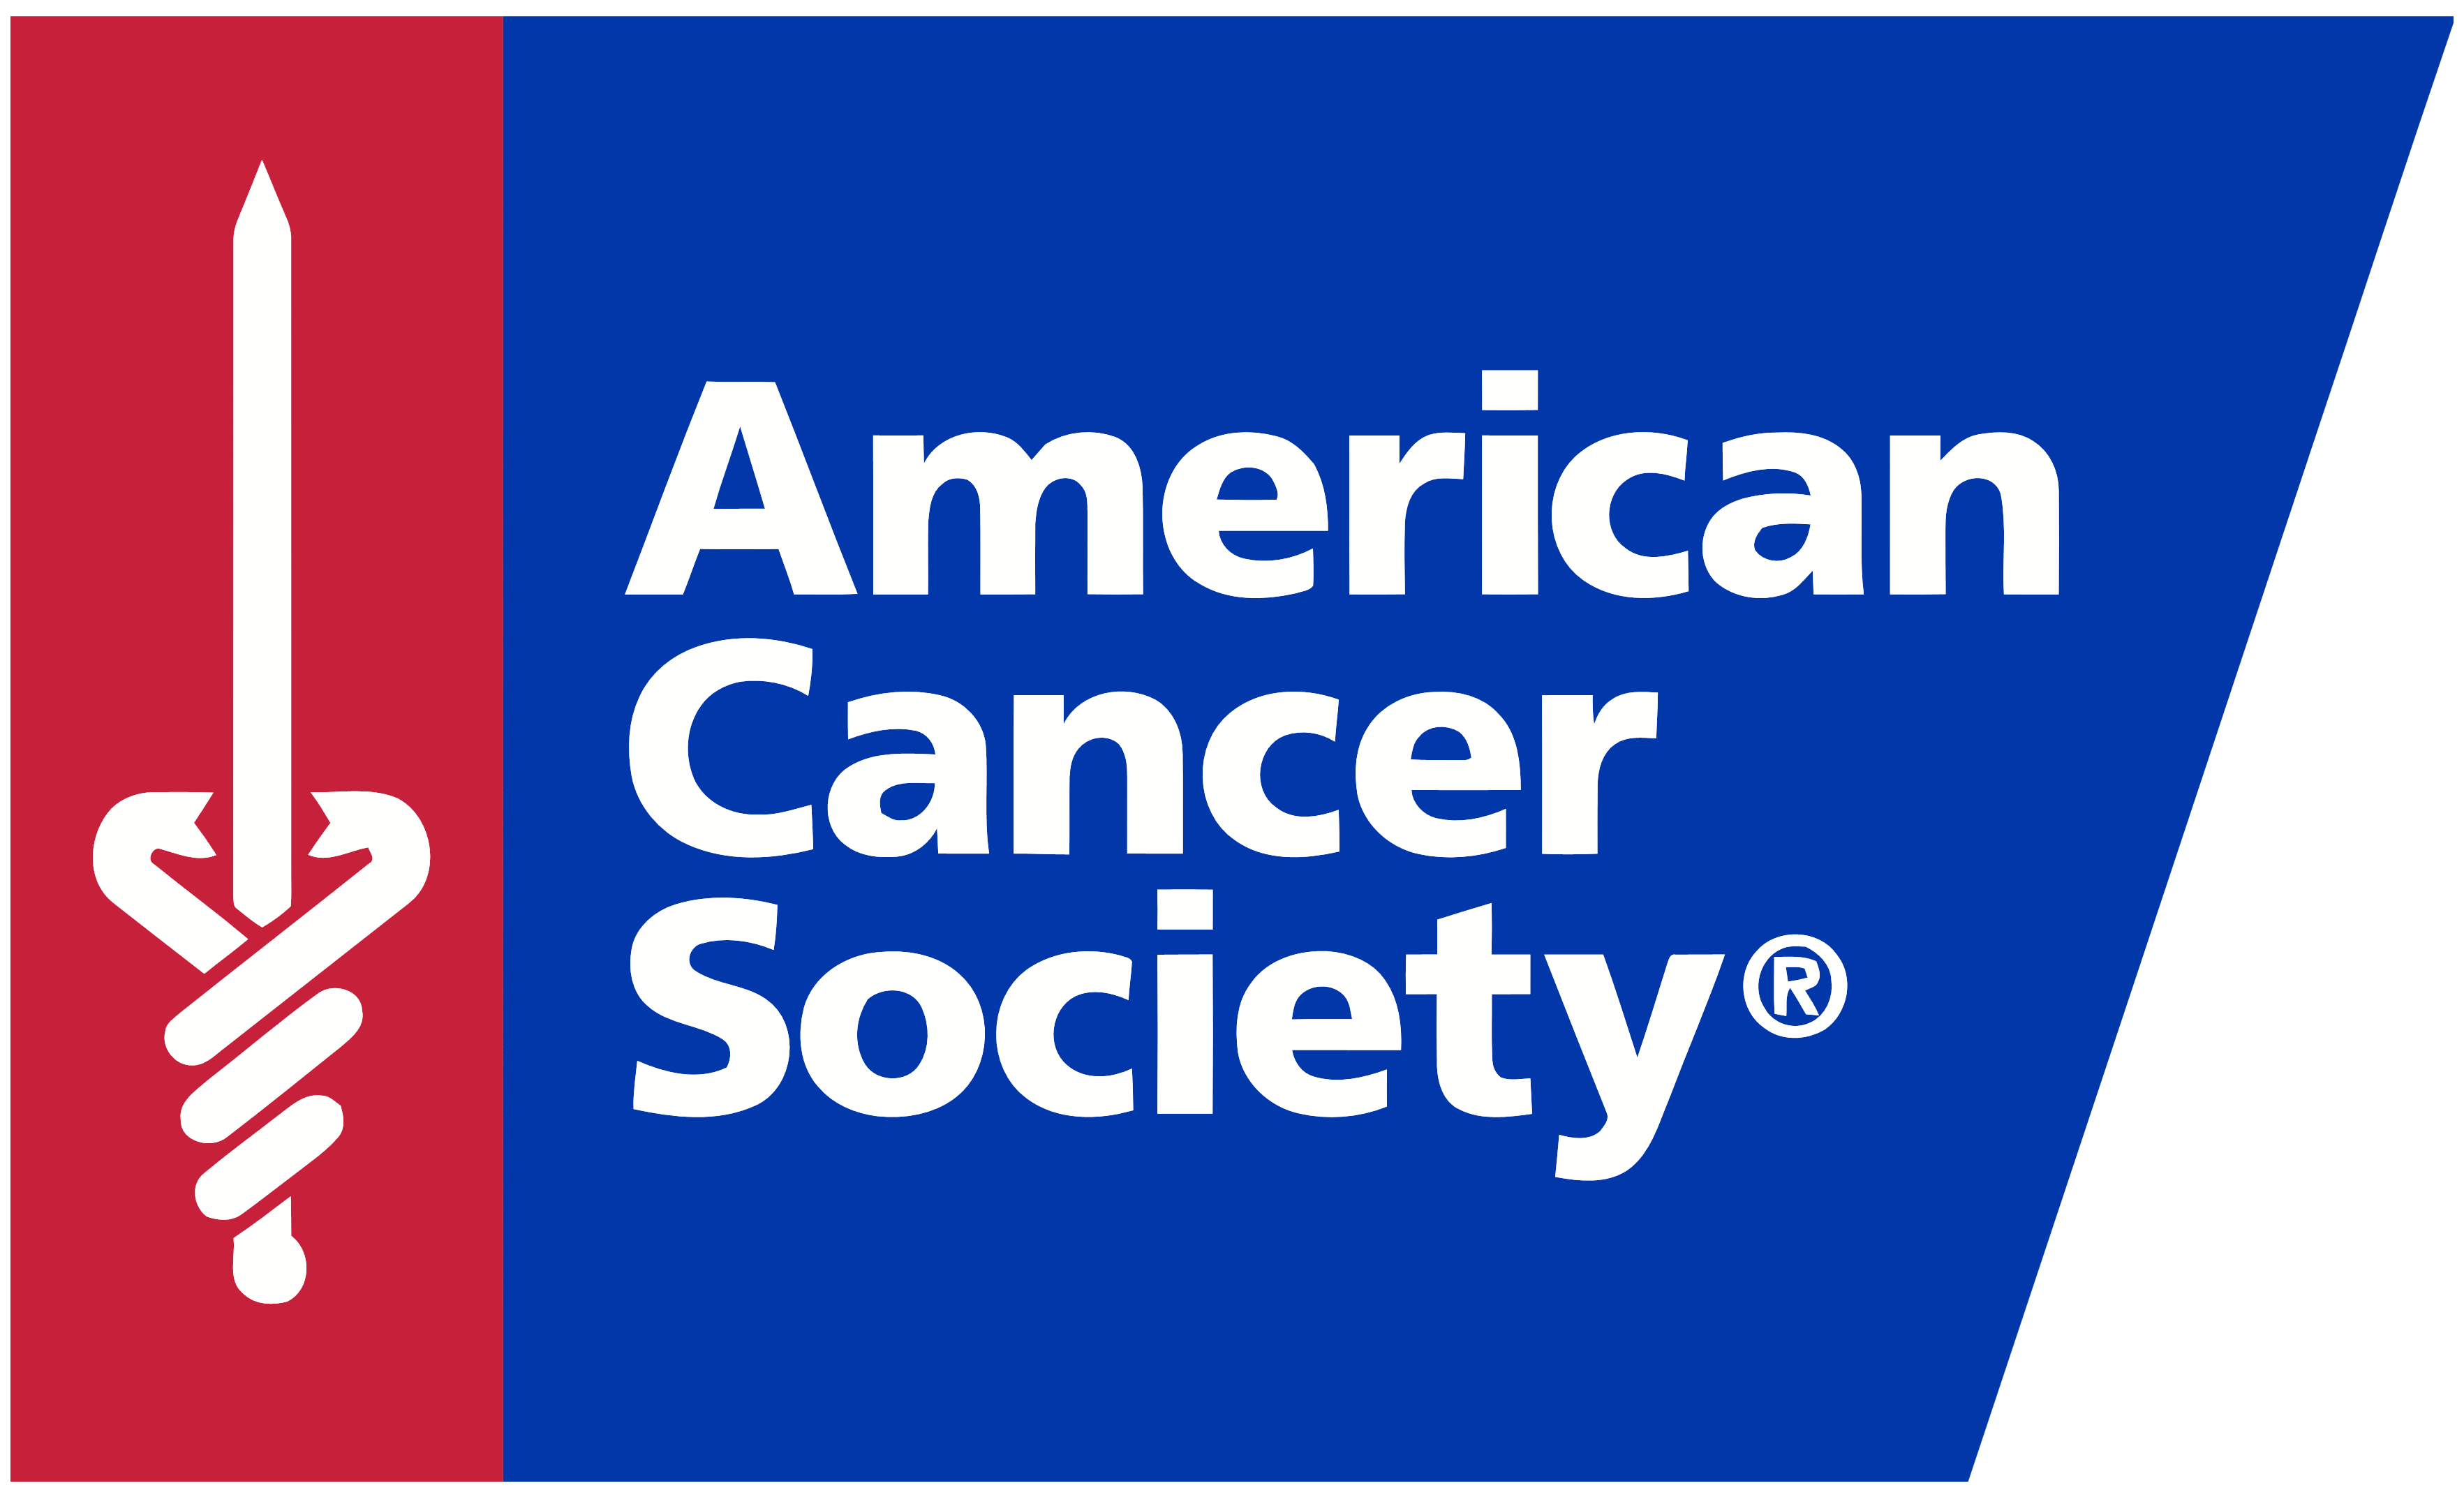 4th Street Auto supports the American Cancer Society